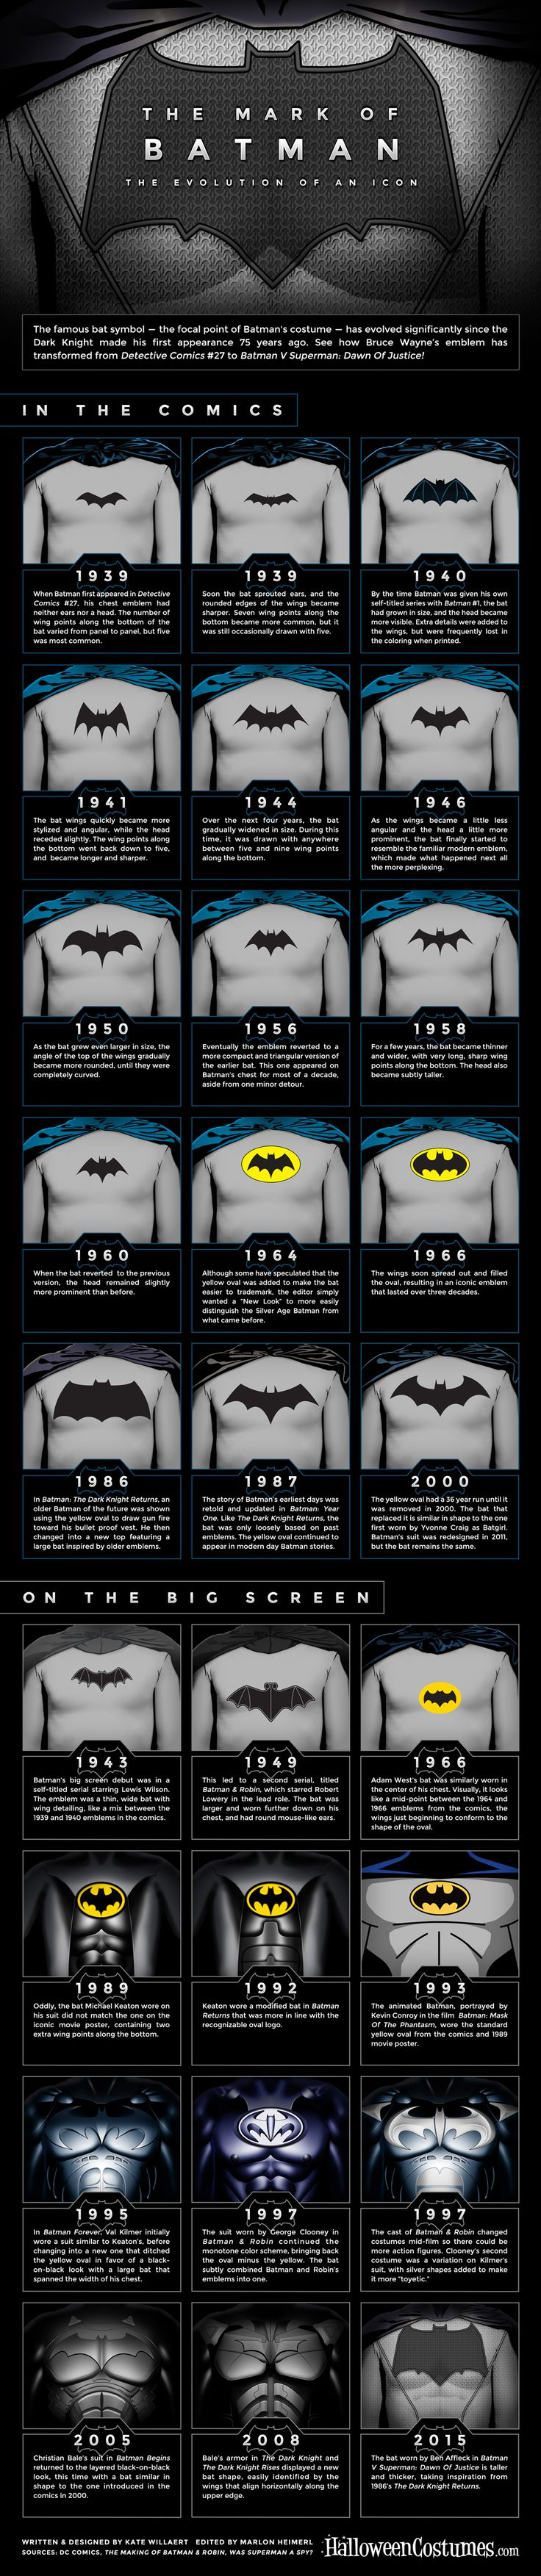 The Mark of Batman: The Evolution of an Icon Infographic - Happy Batman Day on July 23rd! 75 years old this year :)